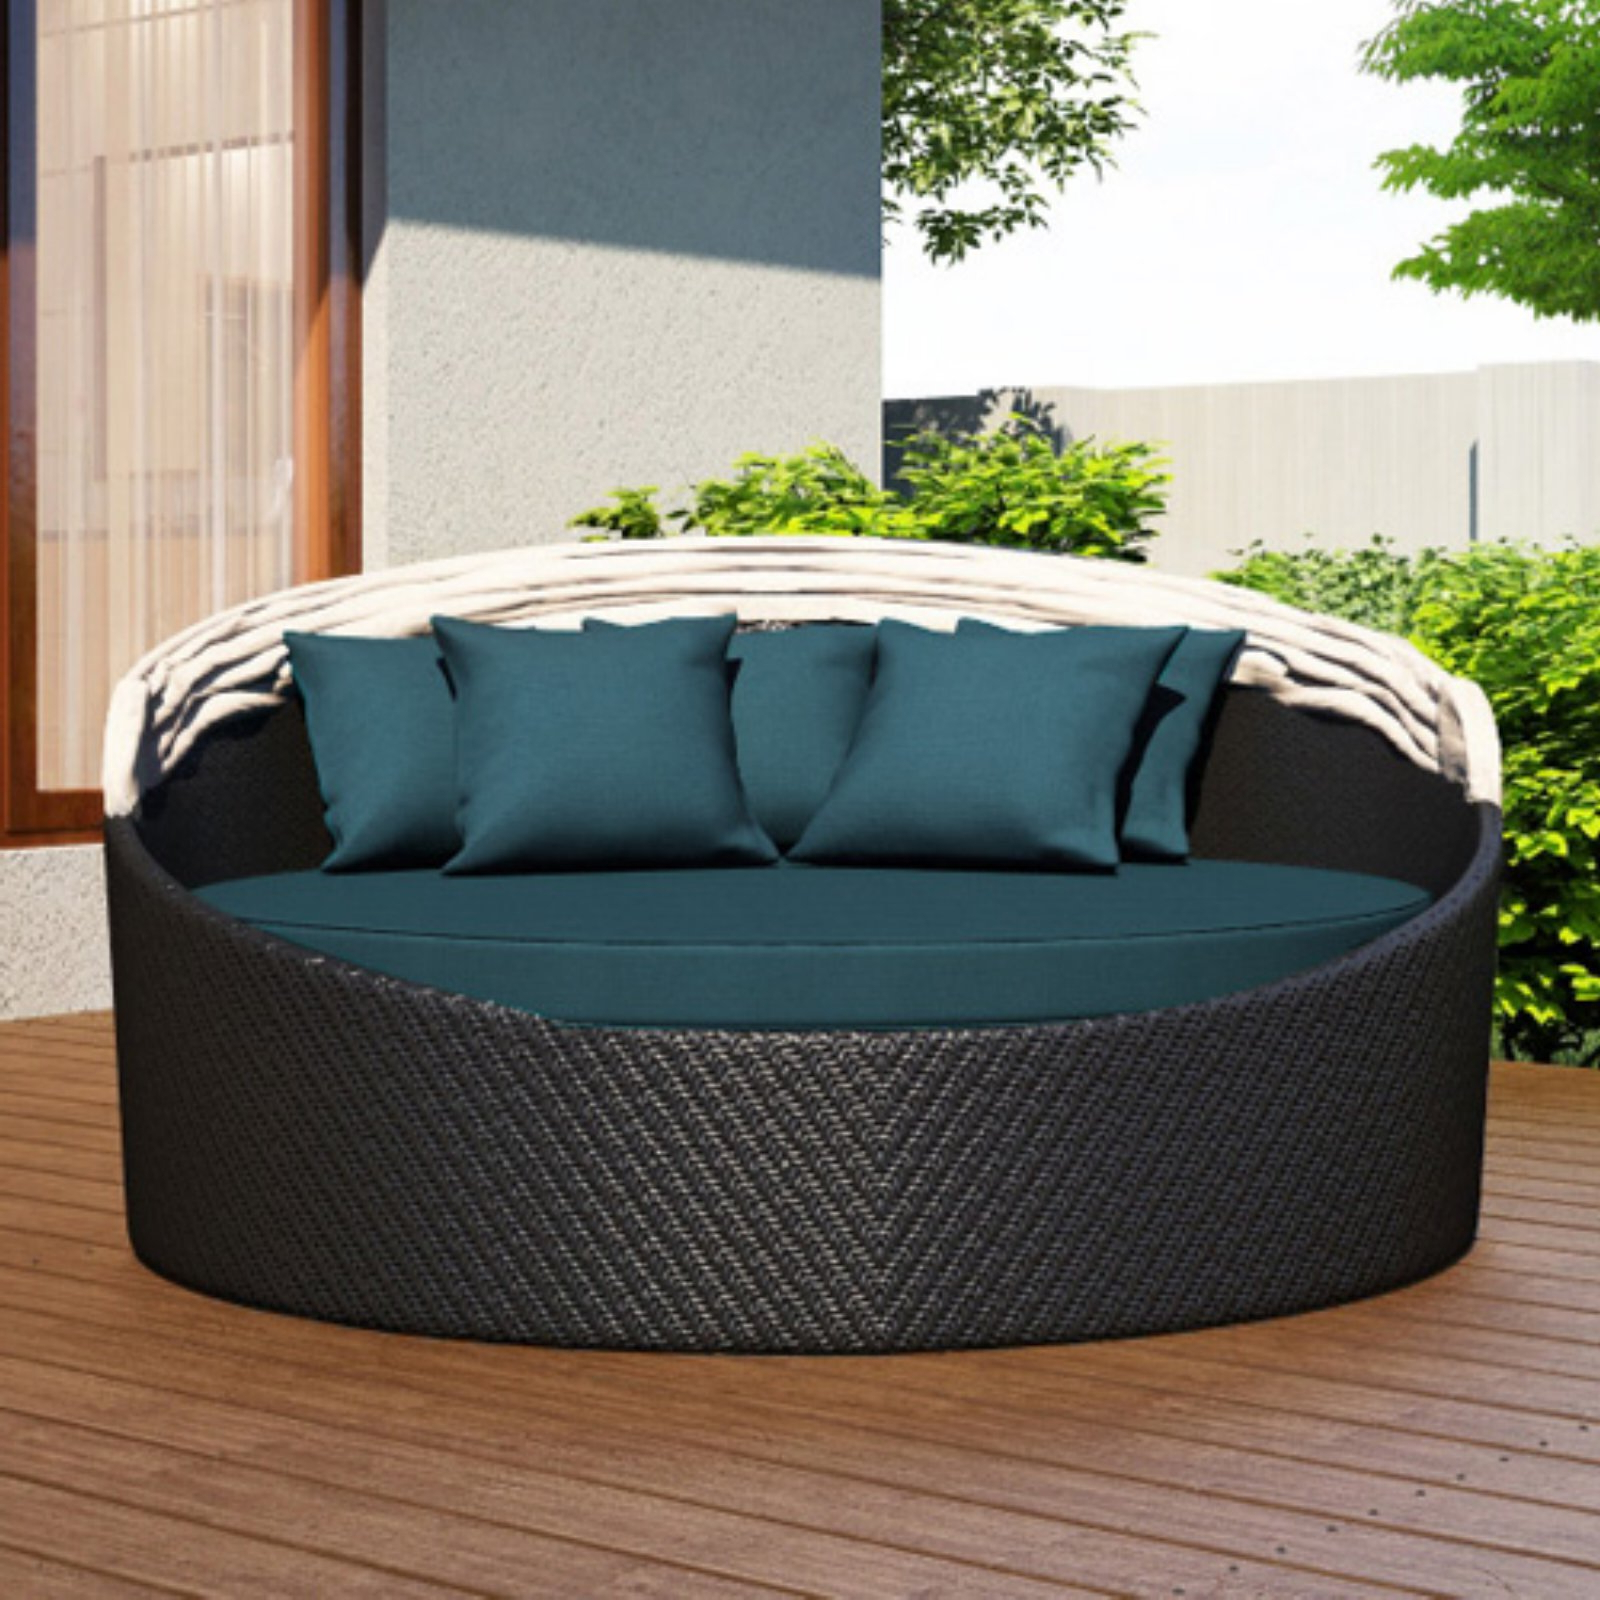 Freeport Patio Daybeds With Cushion Inside Well Known Outdoor Harmonia Living Wink Canopy Daybed Sunbrella Heather (View 9 of 20)